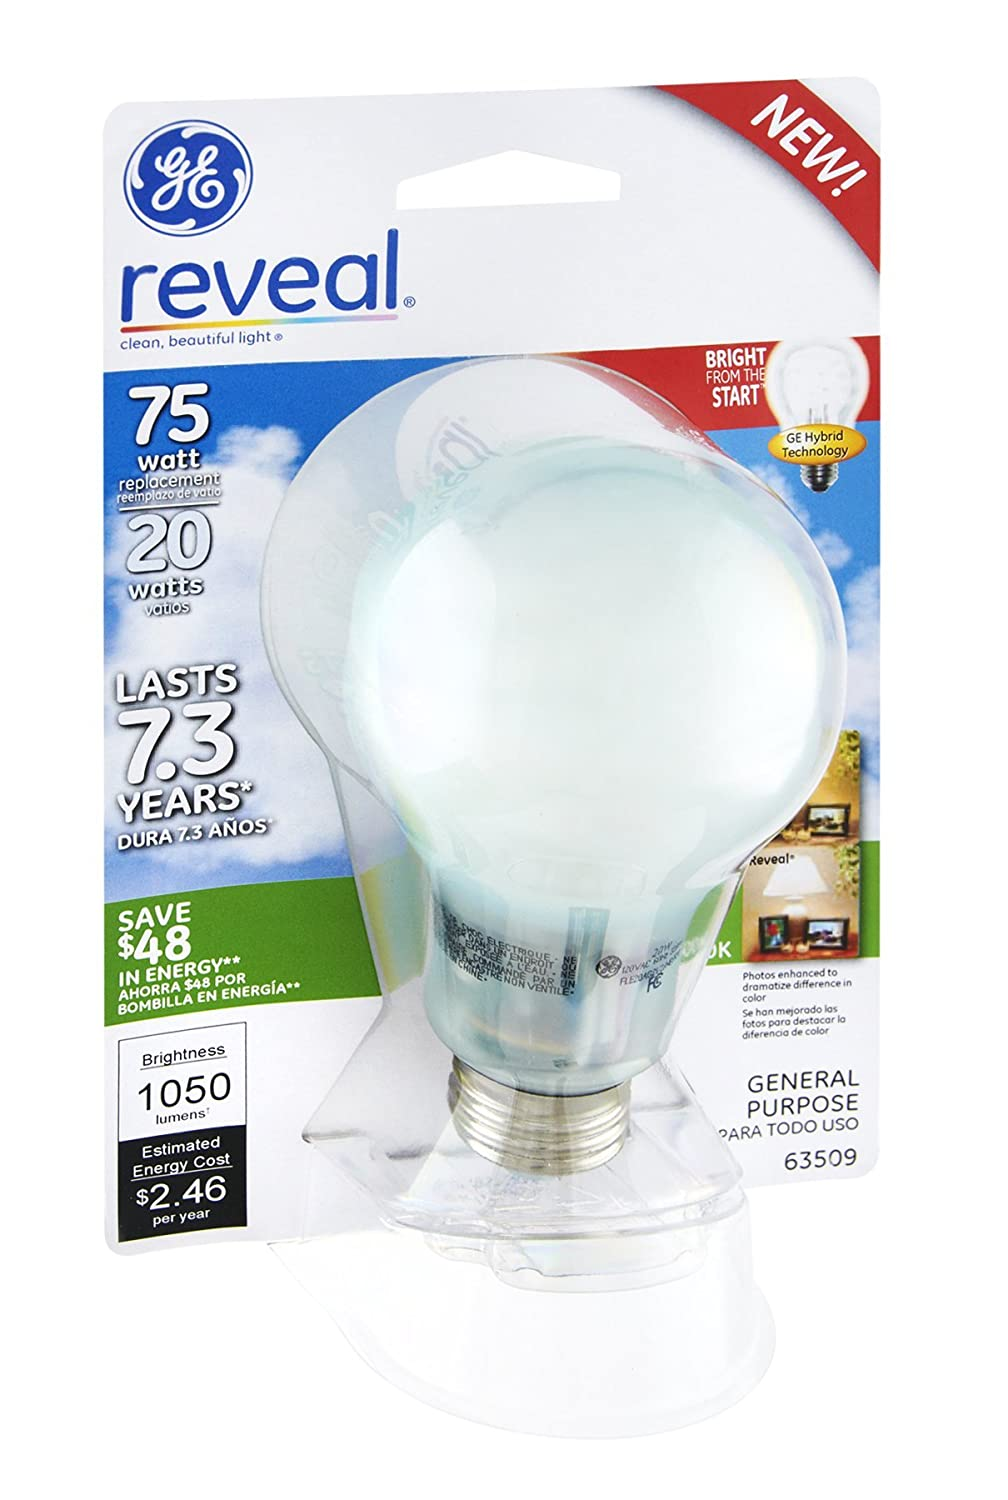 GE Reveal 20 Watts General Purpose Light Bulb EA (Pack of 12) 2017 ten light color hobo japanese light amount notes the books envelope contain within core general purpose student notebook